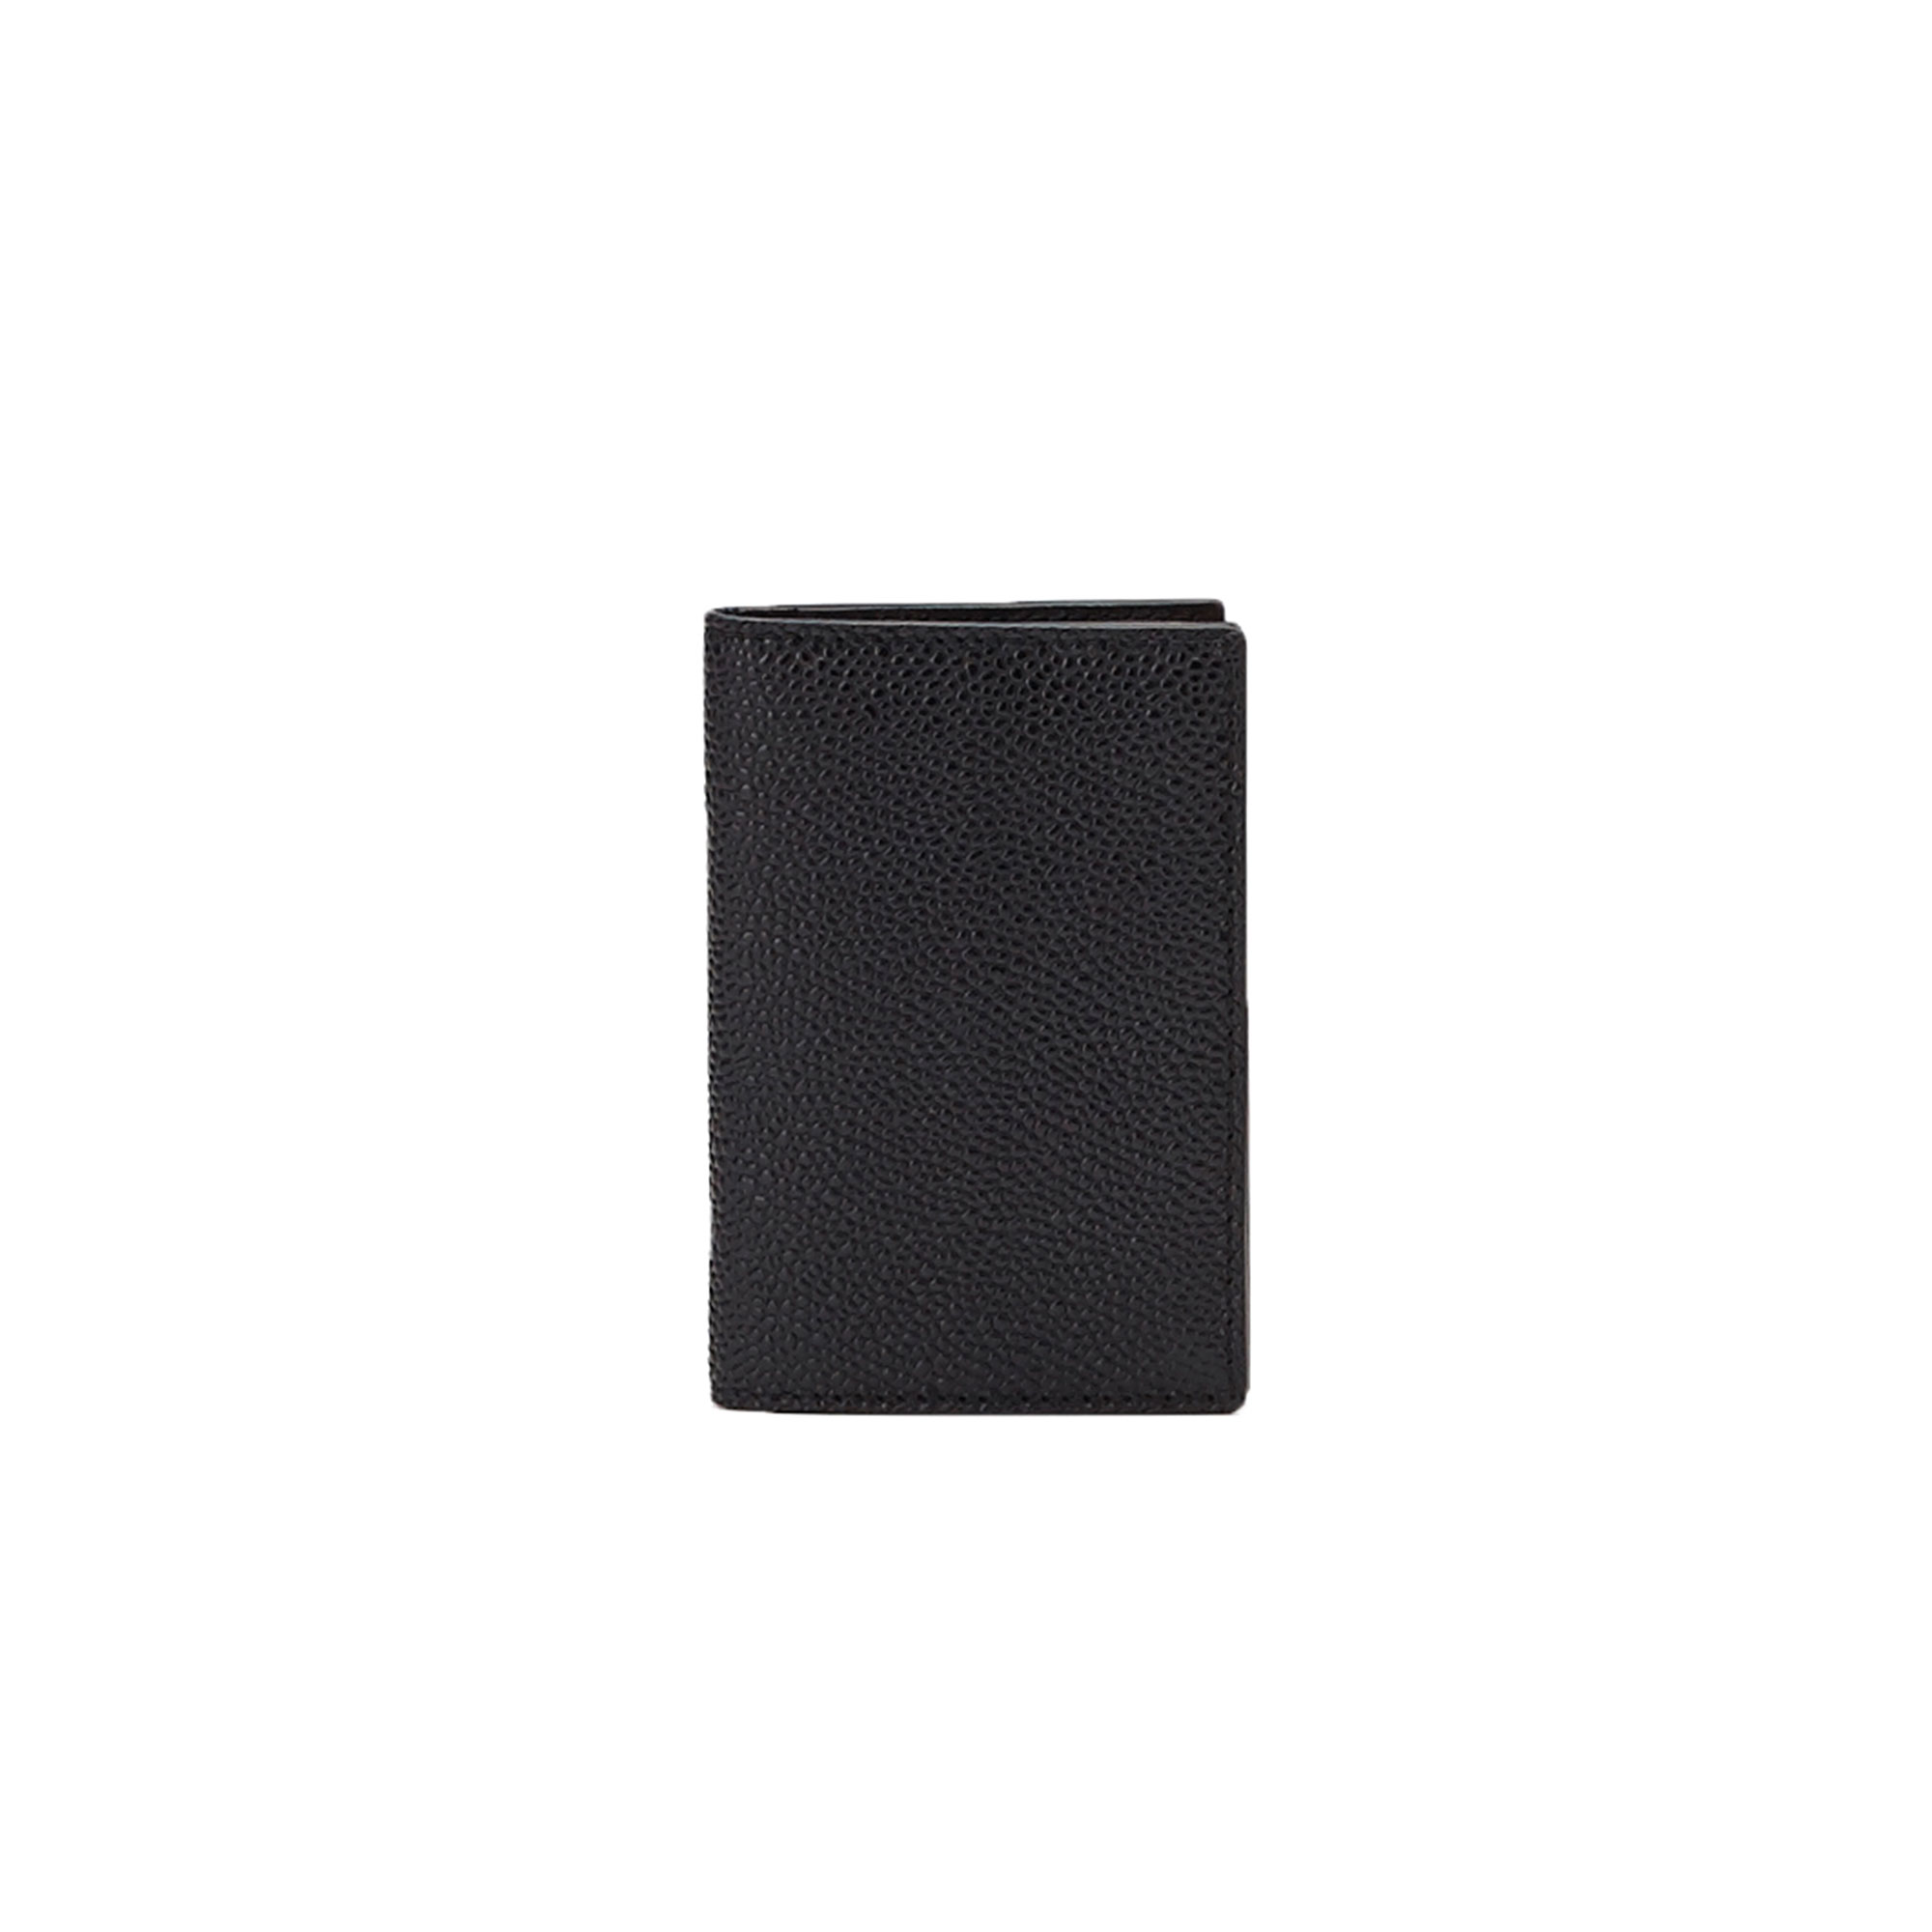 The black grain calf Business Card Holder by Bertoni 1949 01